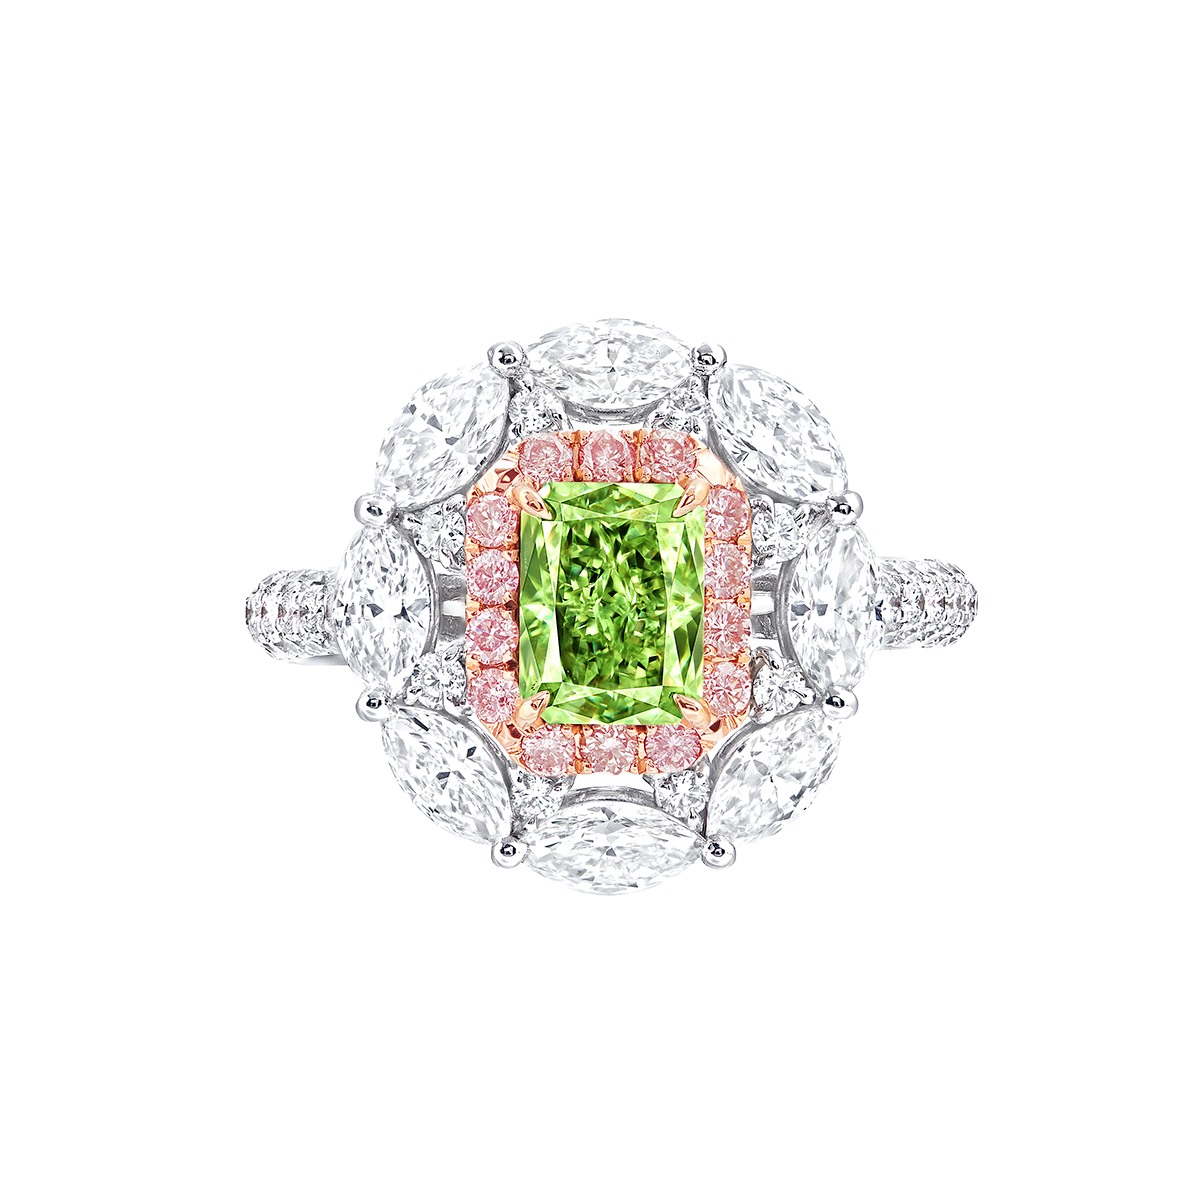 GIA 1.01克拉 濃彩黃綠彩鑽鑽石戒